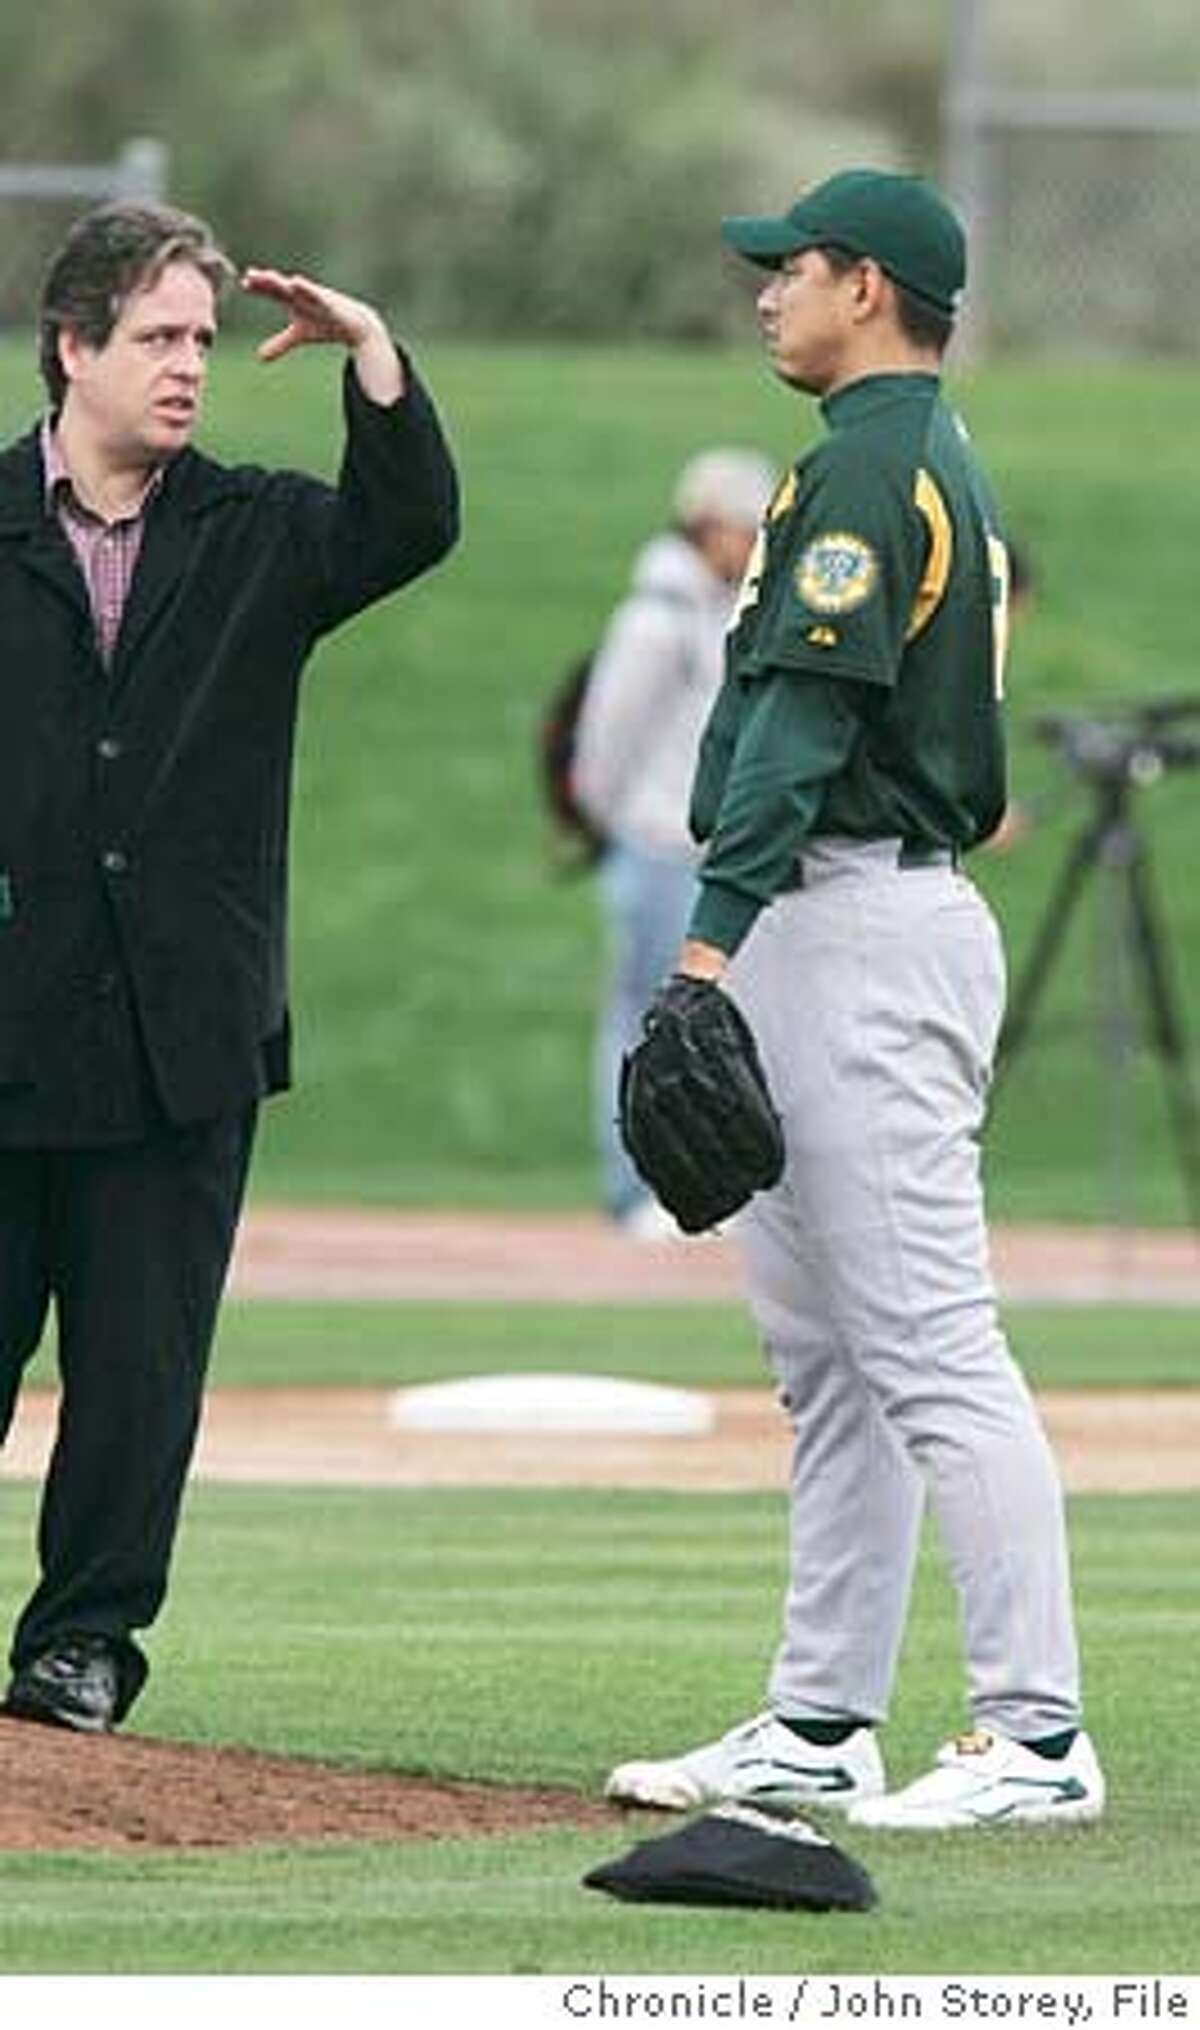 022005_Athletics_jrs750.JPG Interpreter Andy Painter explains things to pitcher Keiichi Yabu on the first day of spring training. The Oakland A's first day of Spring Training in Phoenix. Event on 2/20/05 in Phoenix. John Storey / The Chronicle MANDATORY CREDIT FOR PHOTOG AND SF CHRONICLE/ -MAGS OUT